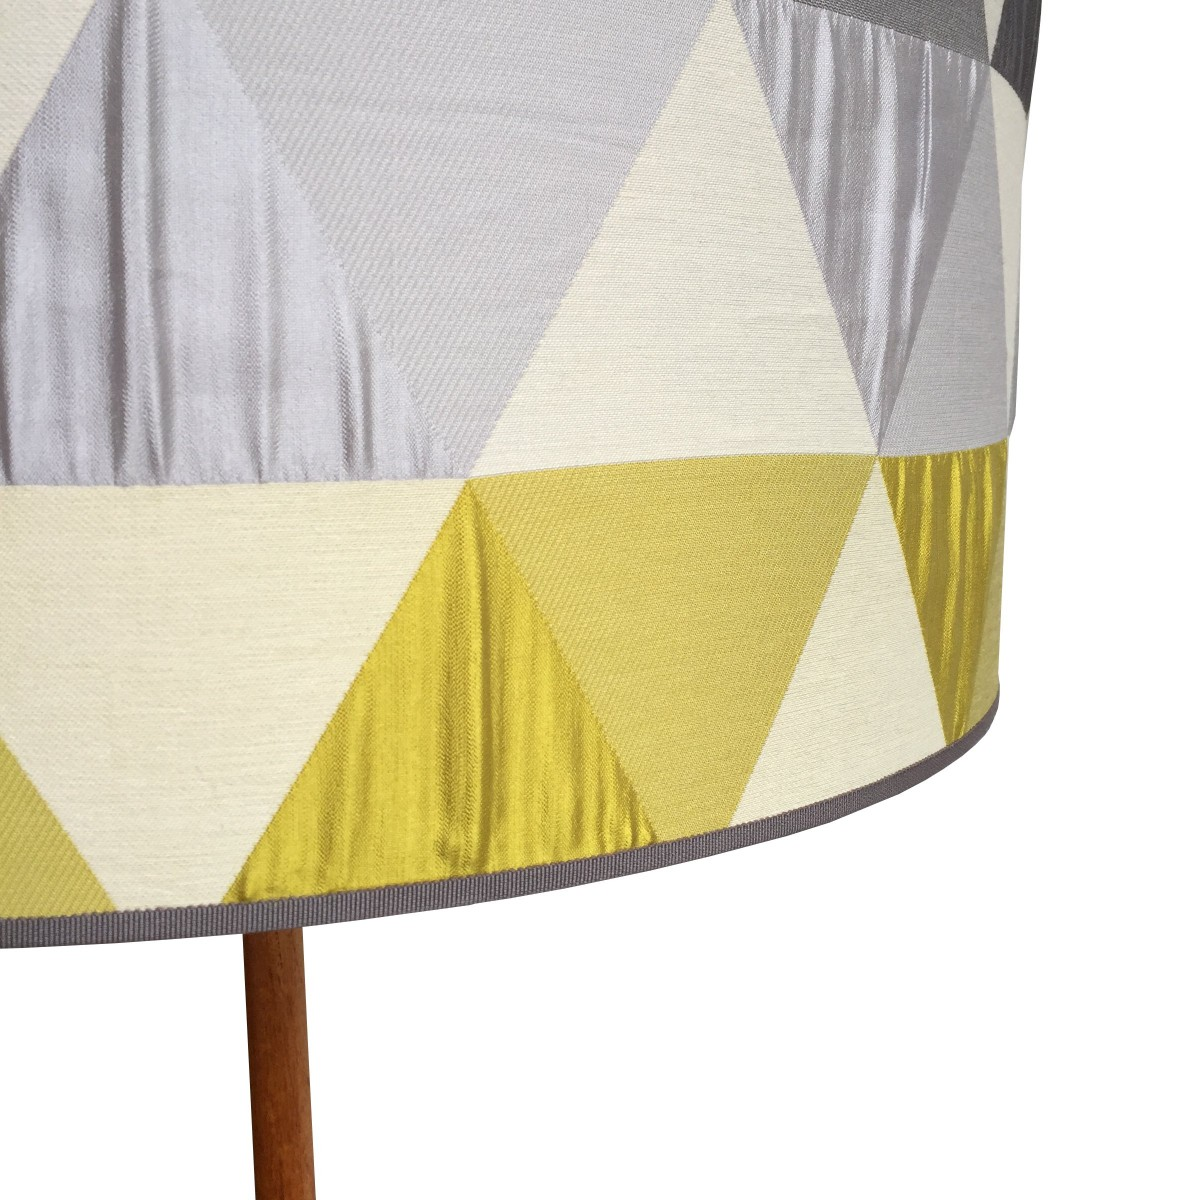 scandinavian floor lamp photo - 3